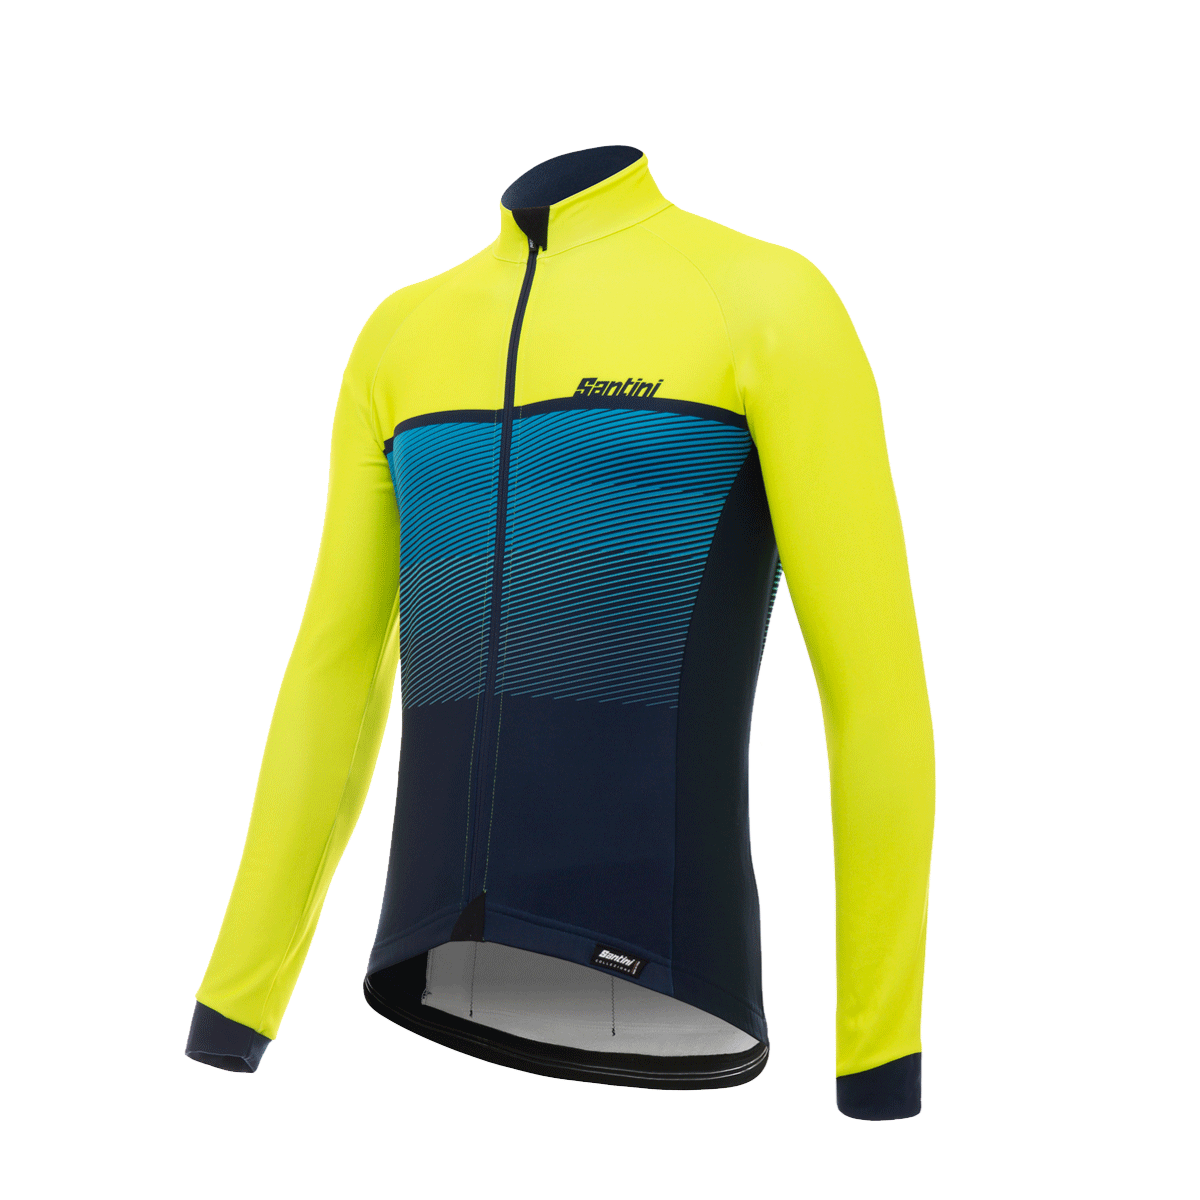 Santini Epic Winter Long Sleeve Jersey 2017 Yellow - Buy Online ... 3e7110308